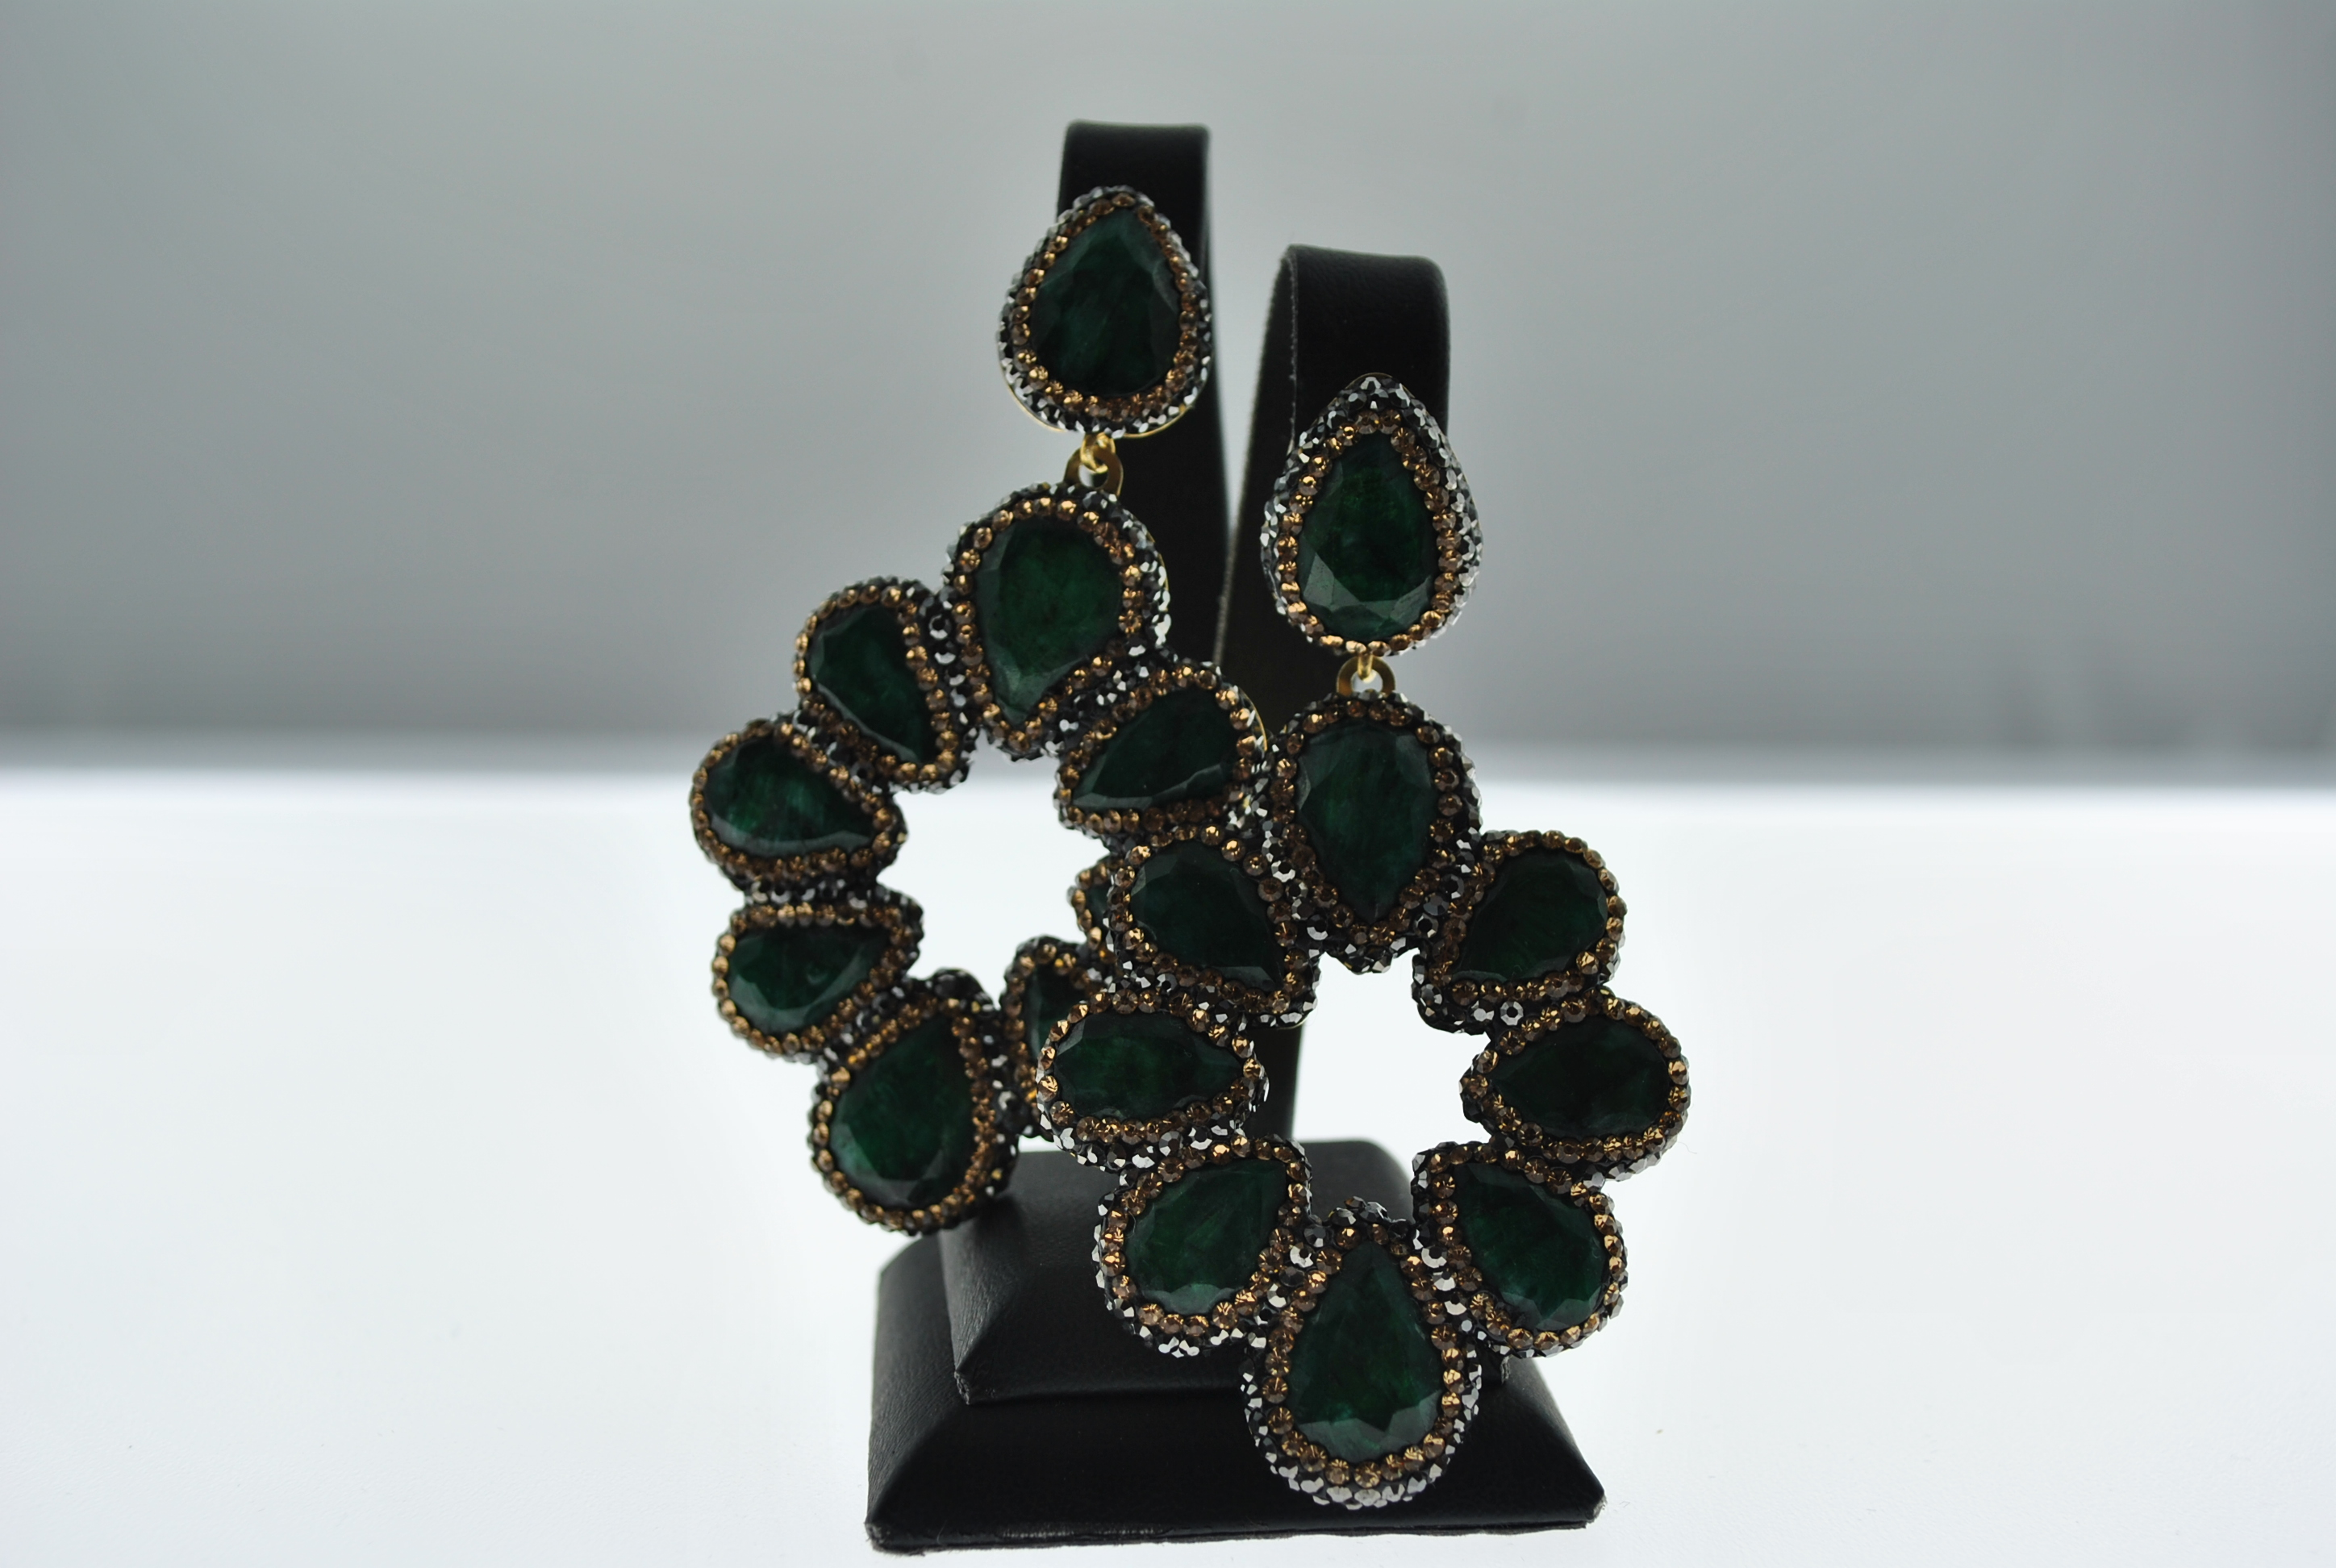 Green and Gold Earrings (out of stock) can be ordered please contact